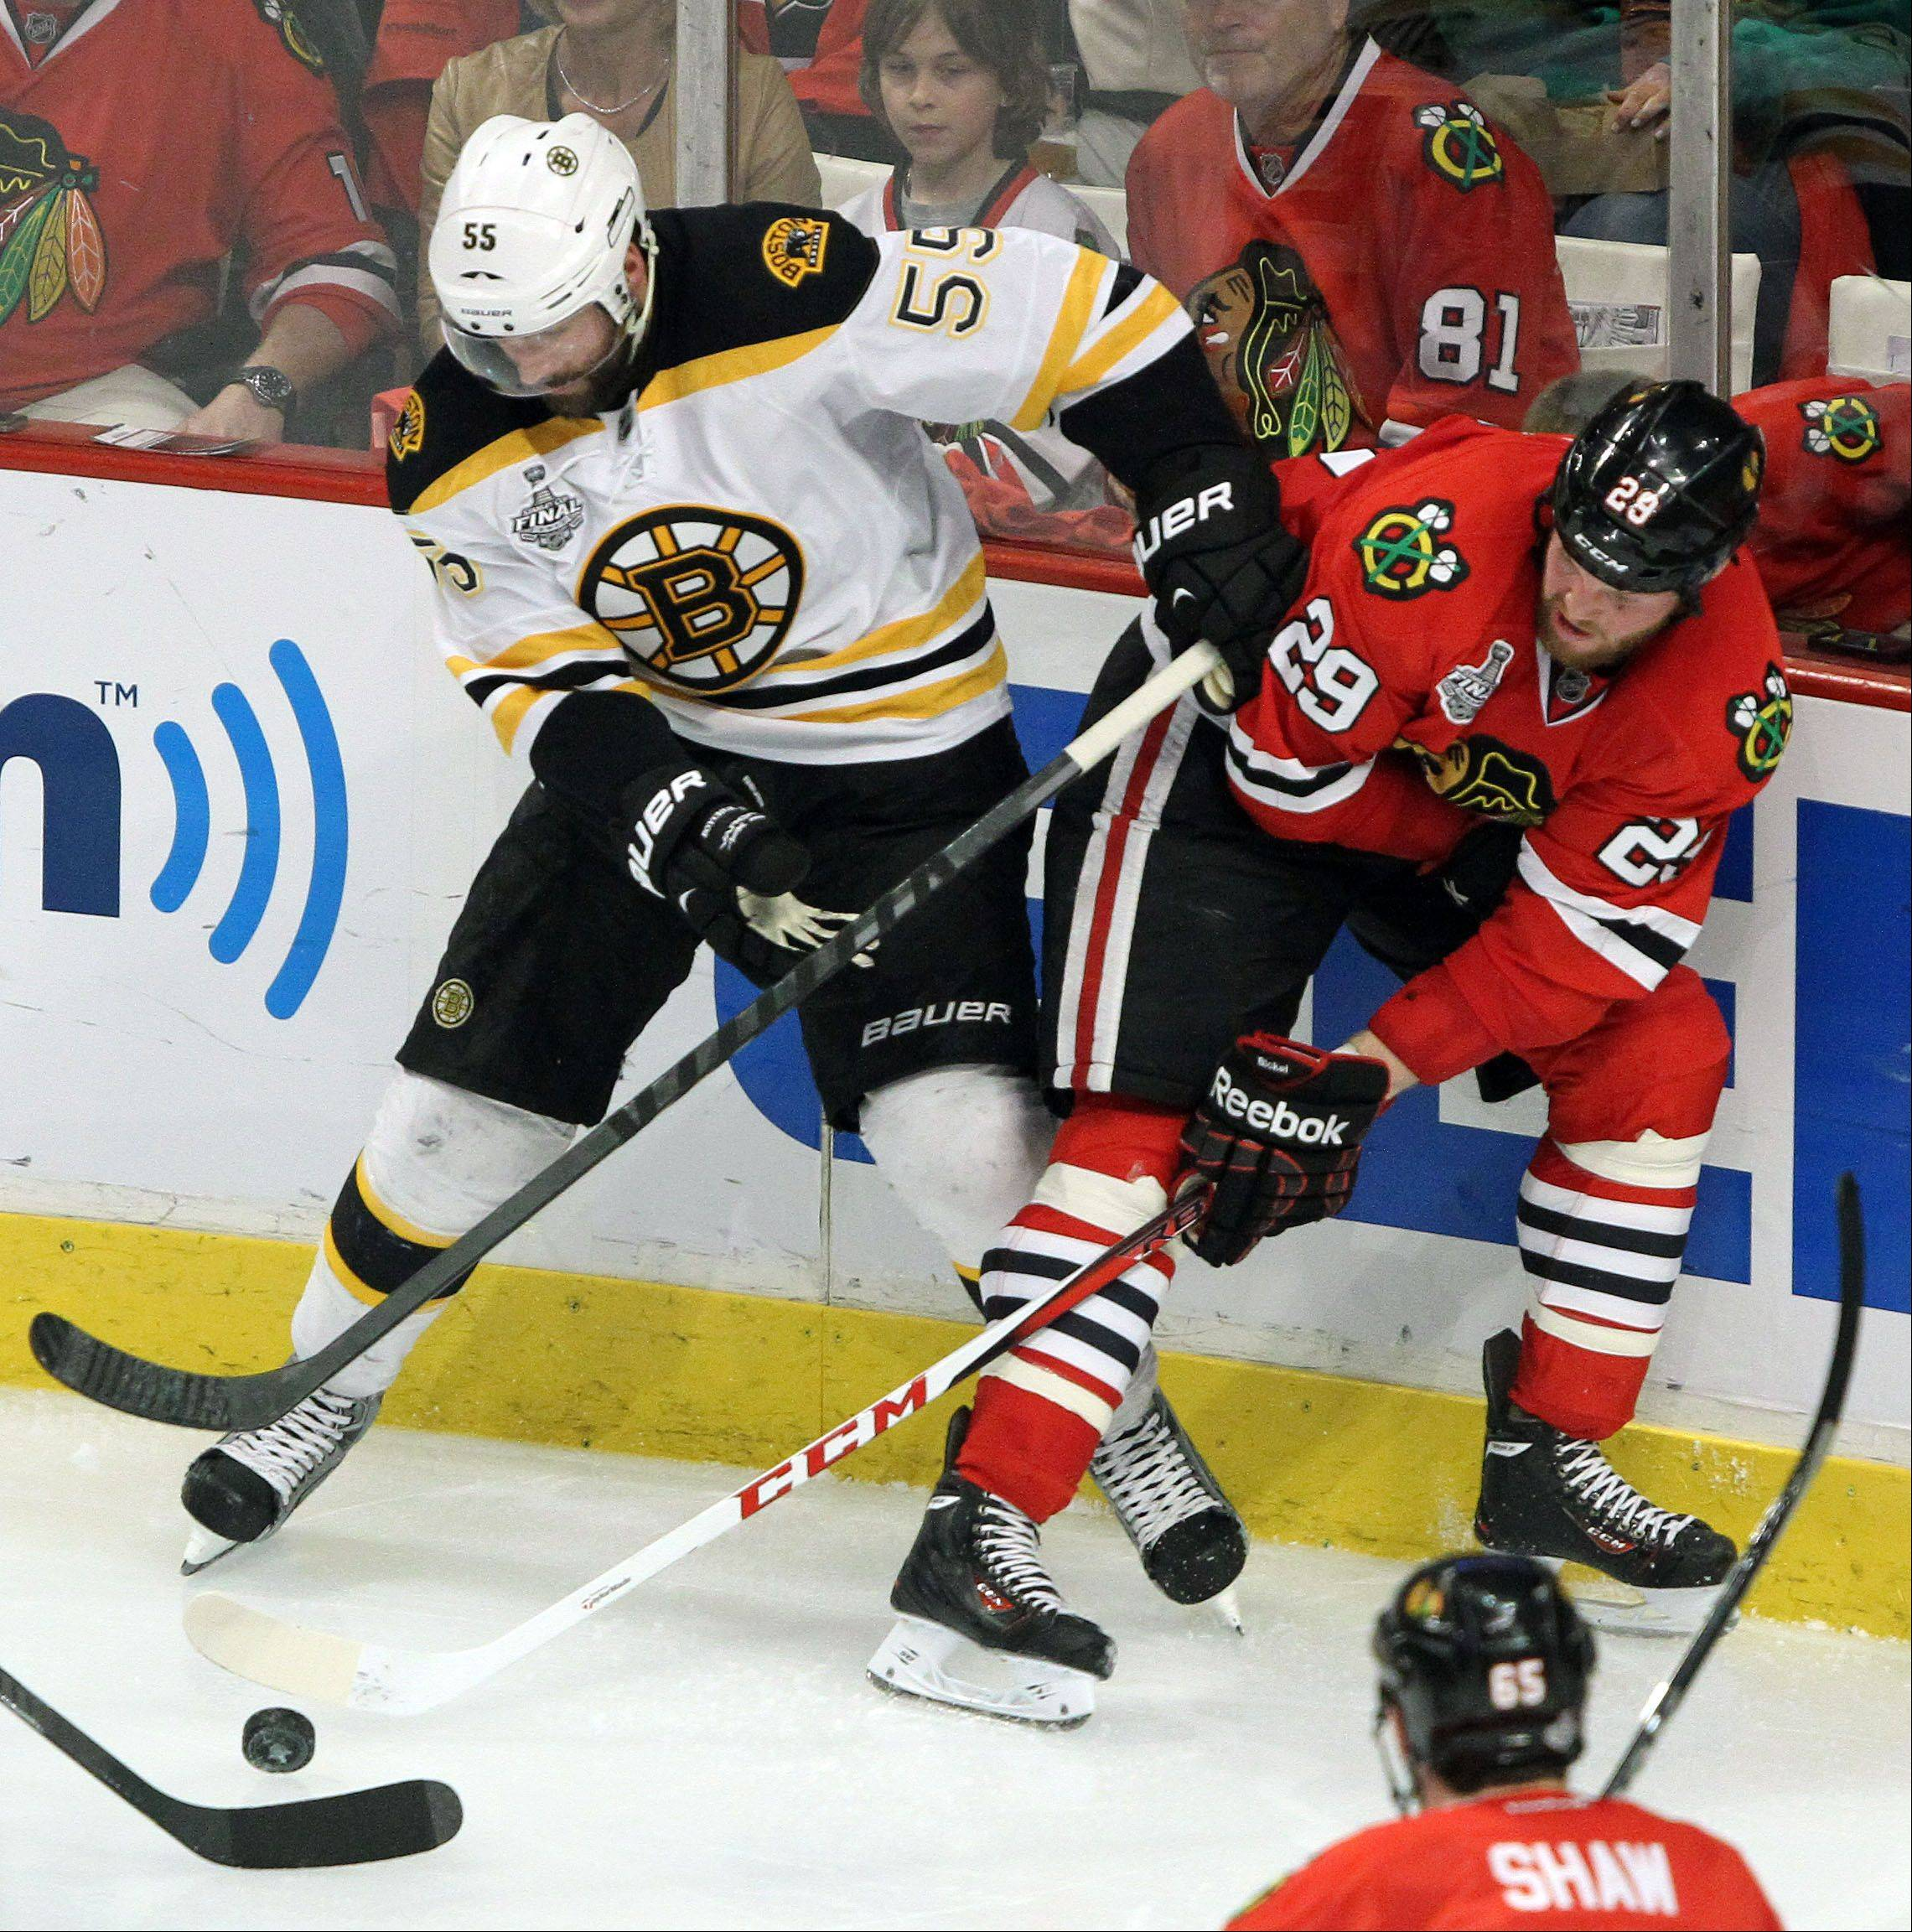 Chicago Blackhawks left wing Bryan Bickell and Boston Bruins defenseman Johnny Boychuk battle during game 2 of the Stanley Cup Finals at the United Center in Chicago Saturday.